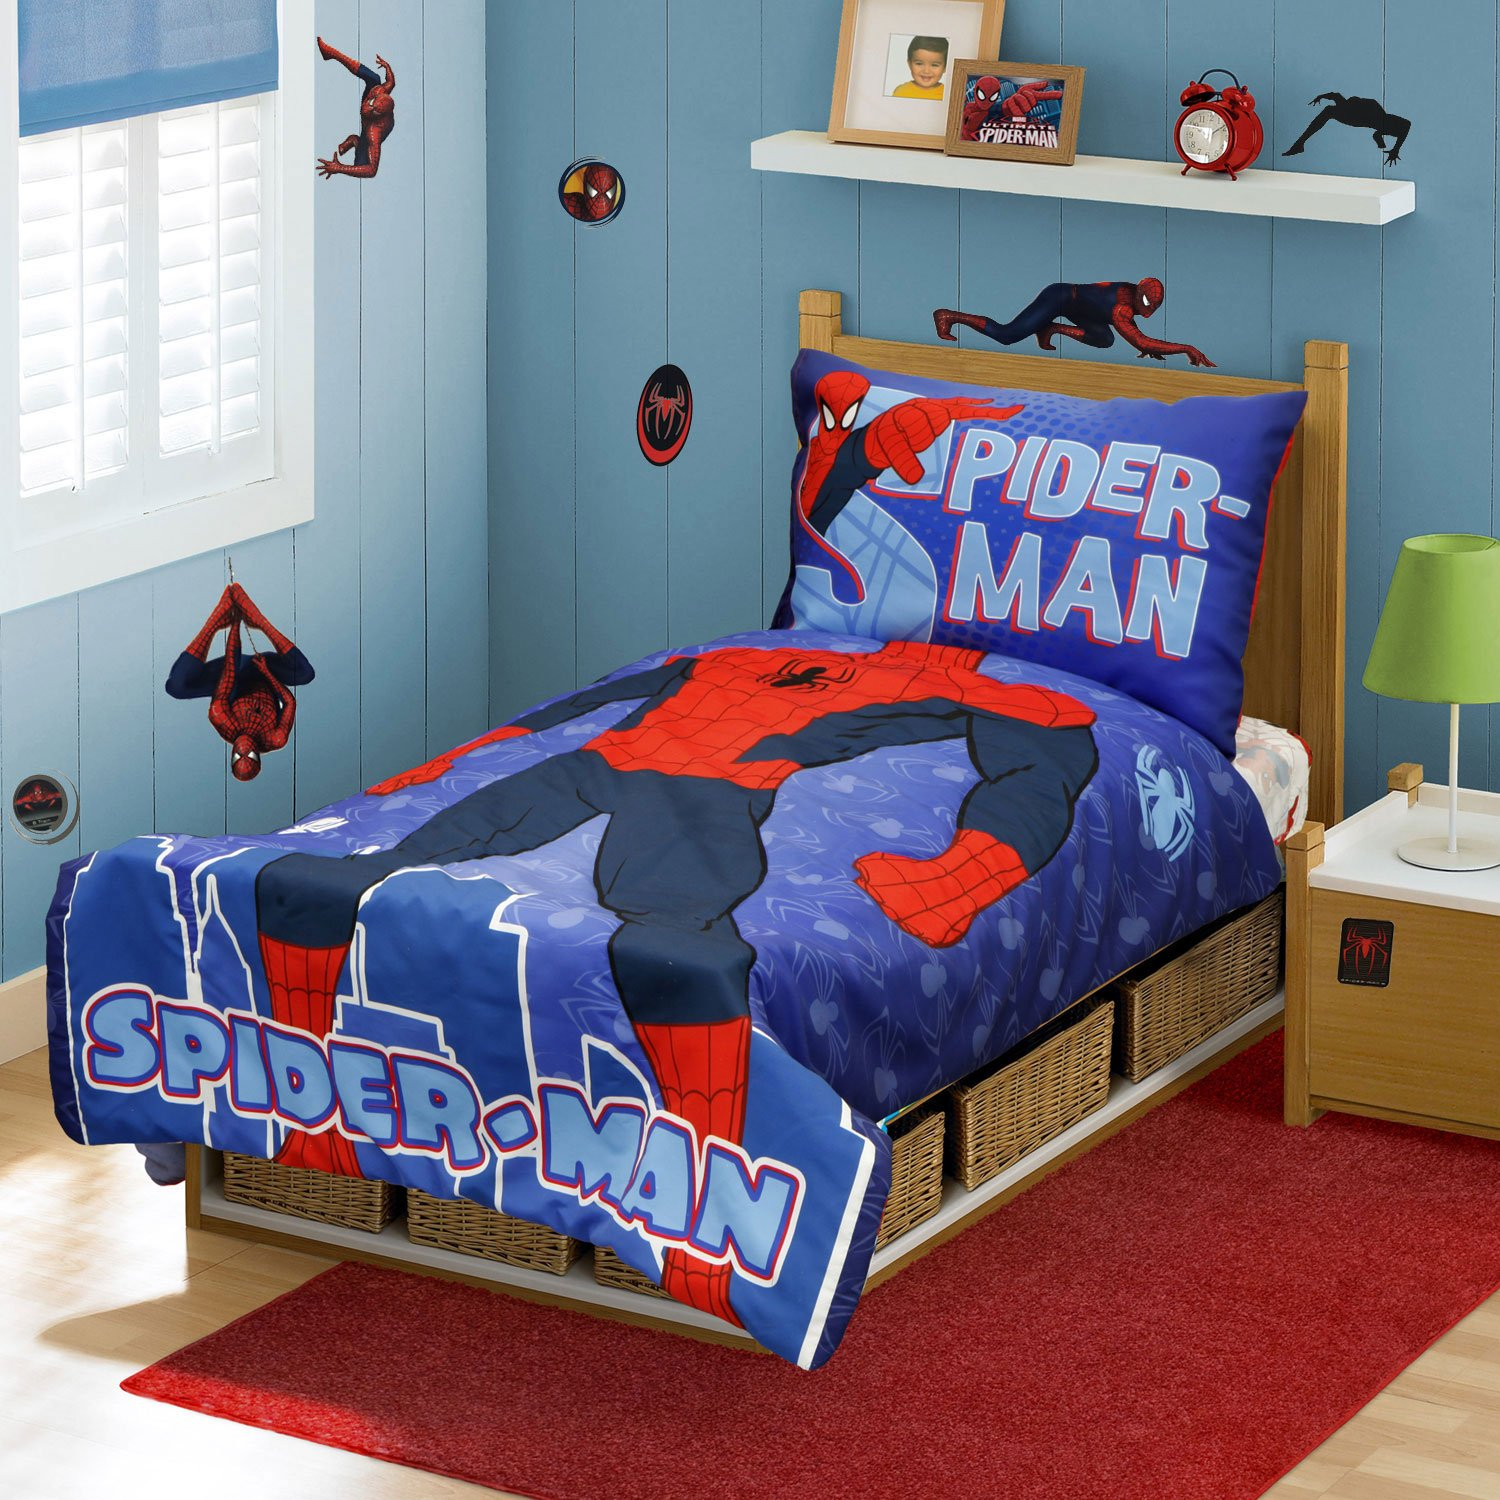 Marvel Spiderman Toddler Bedding and Wall Sticker Set Superhero Comforter Sheets